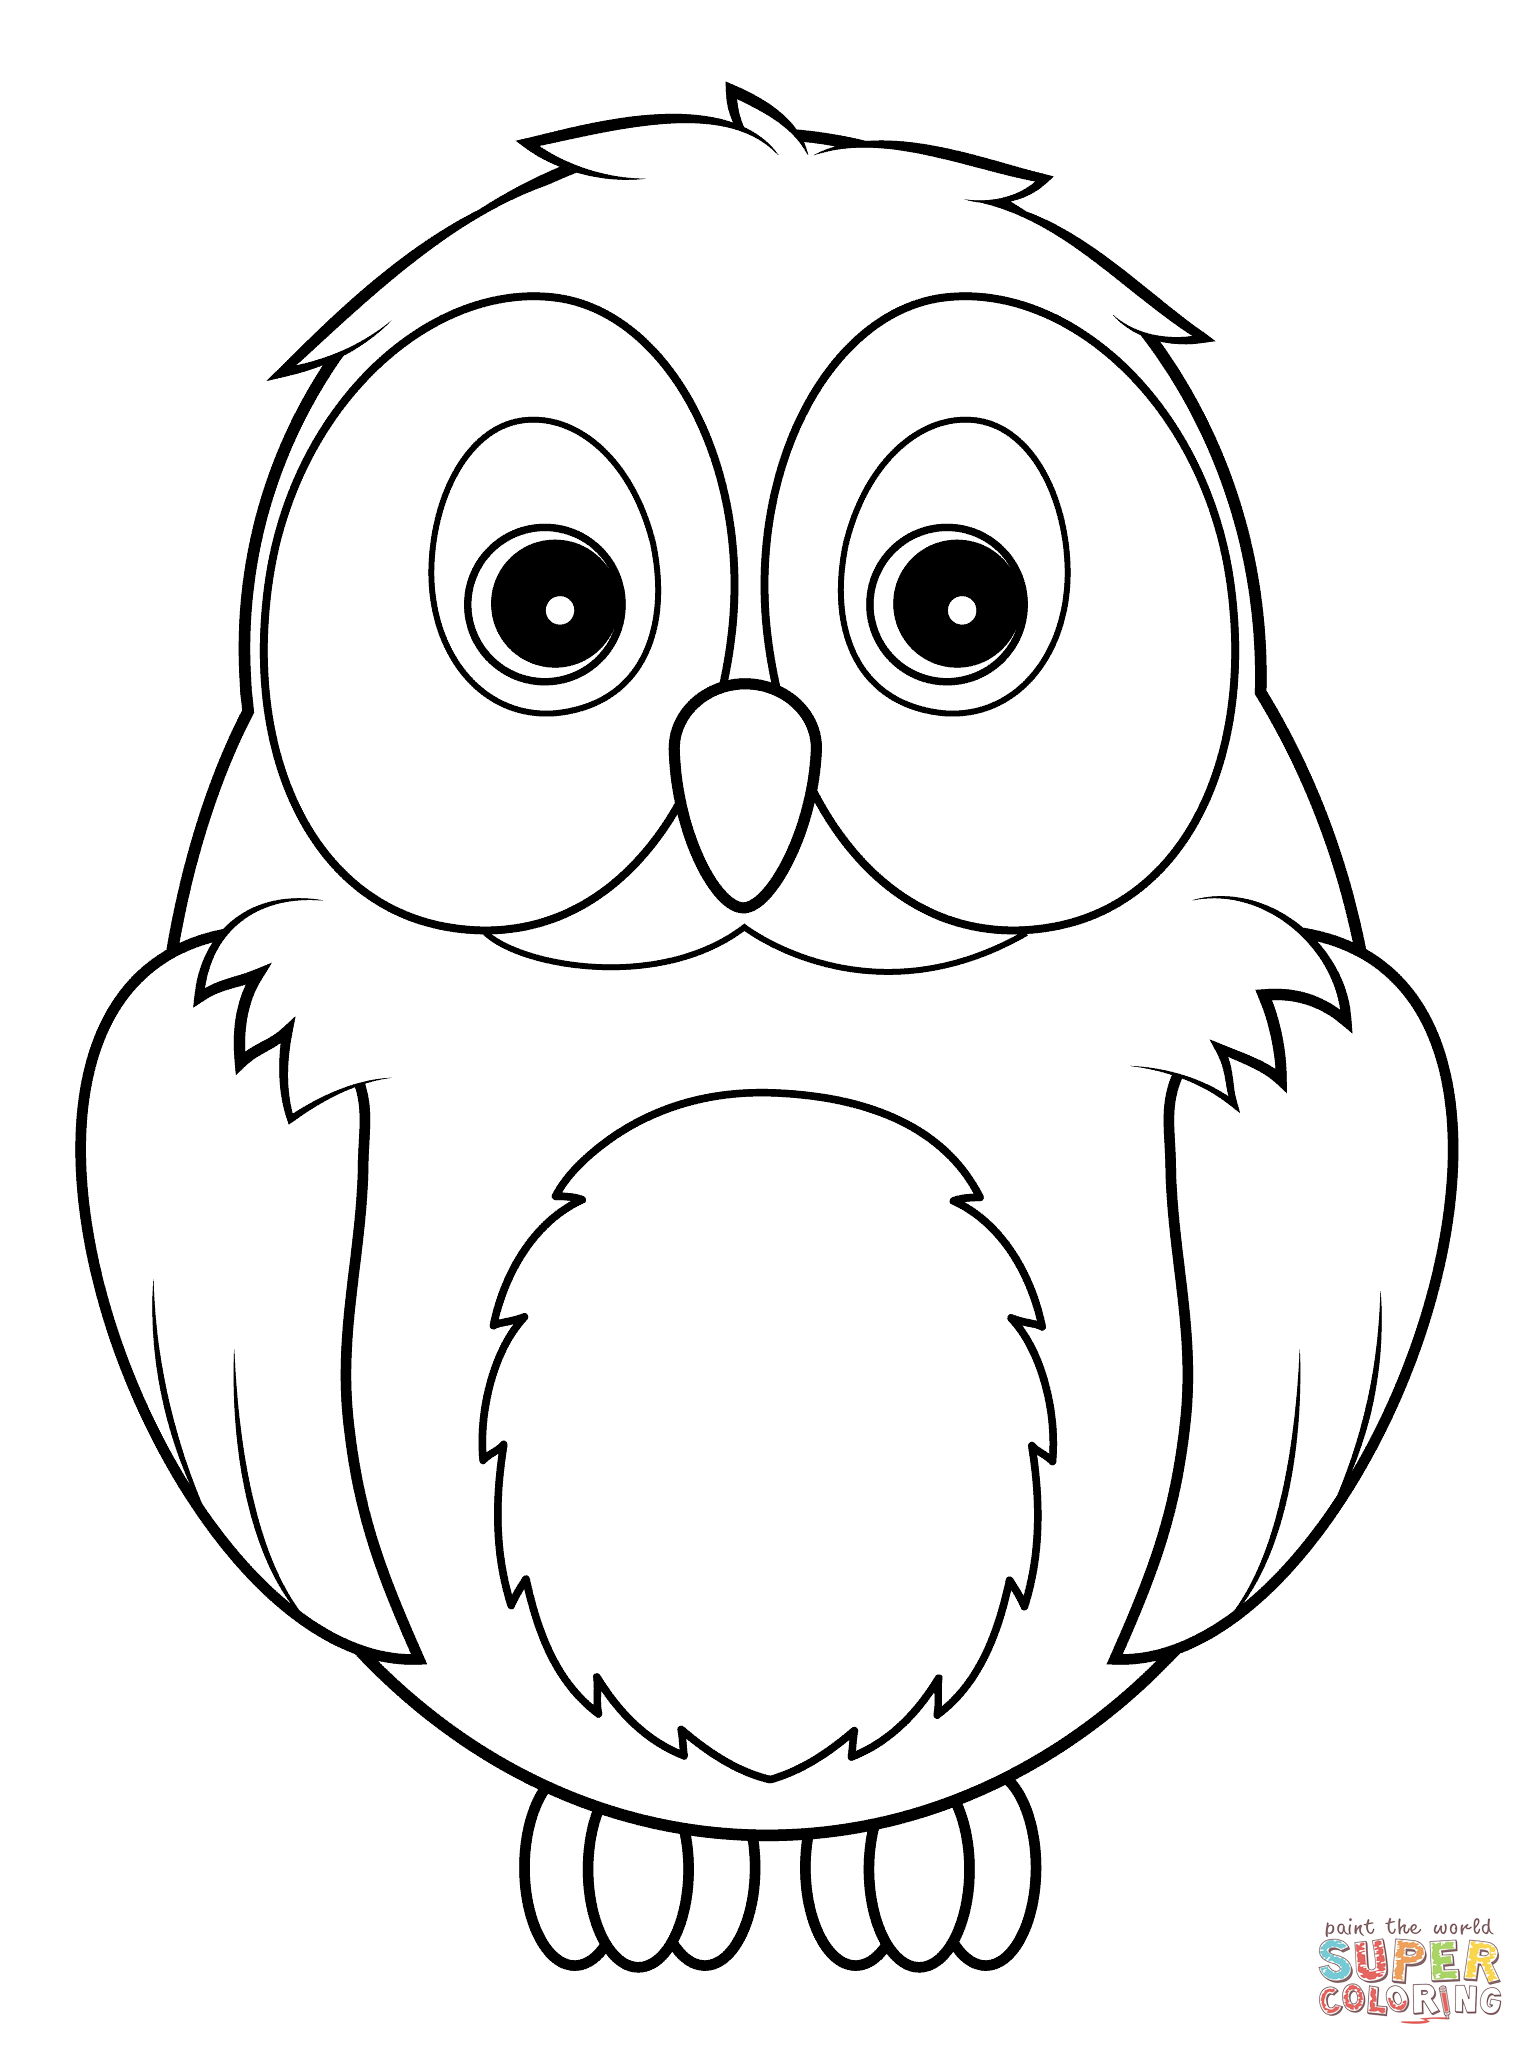 baby owl coloring page - cute baby owl coloring pages coloring home